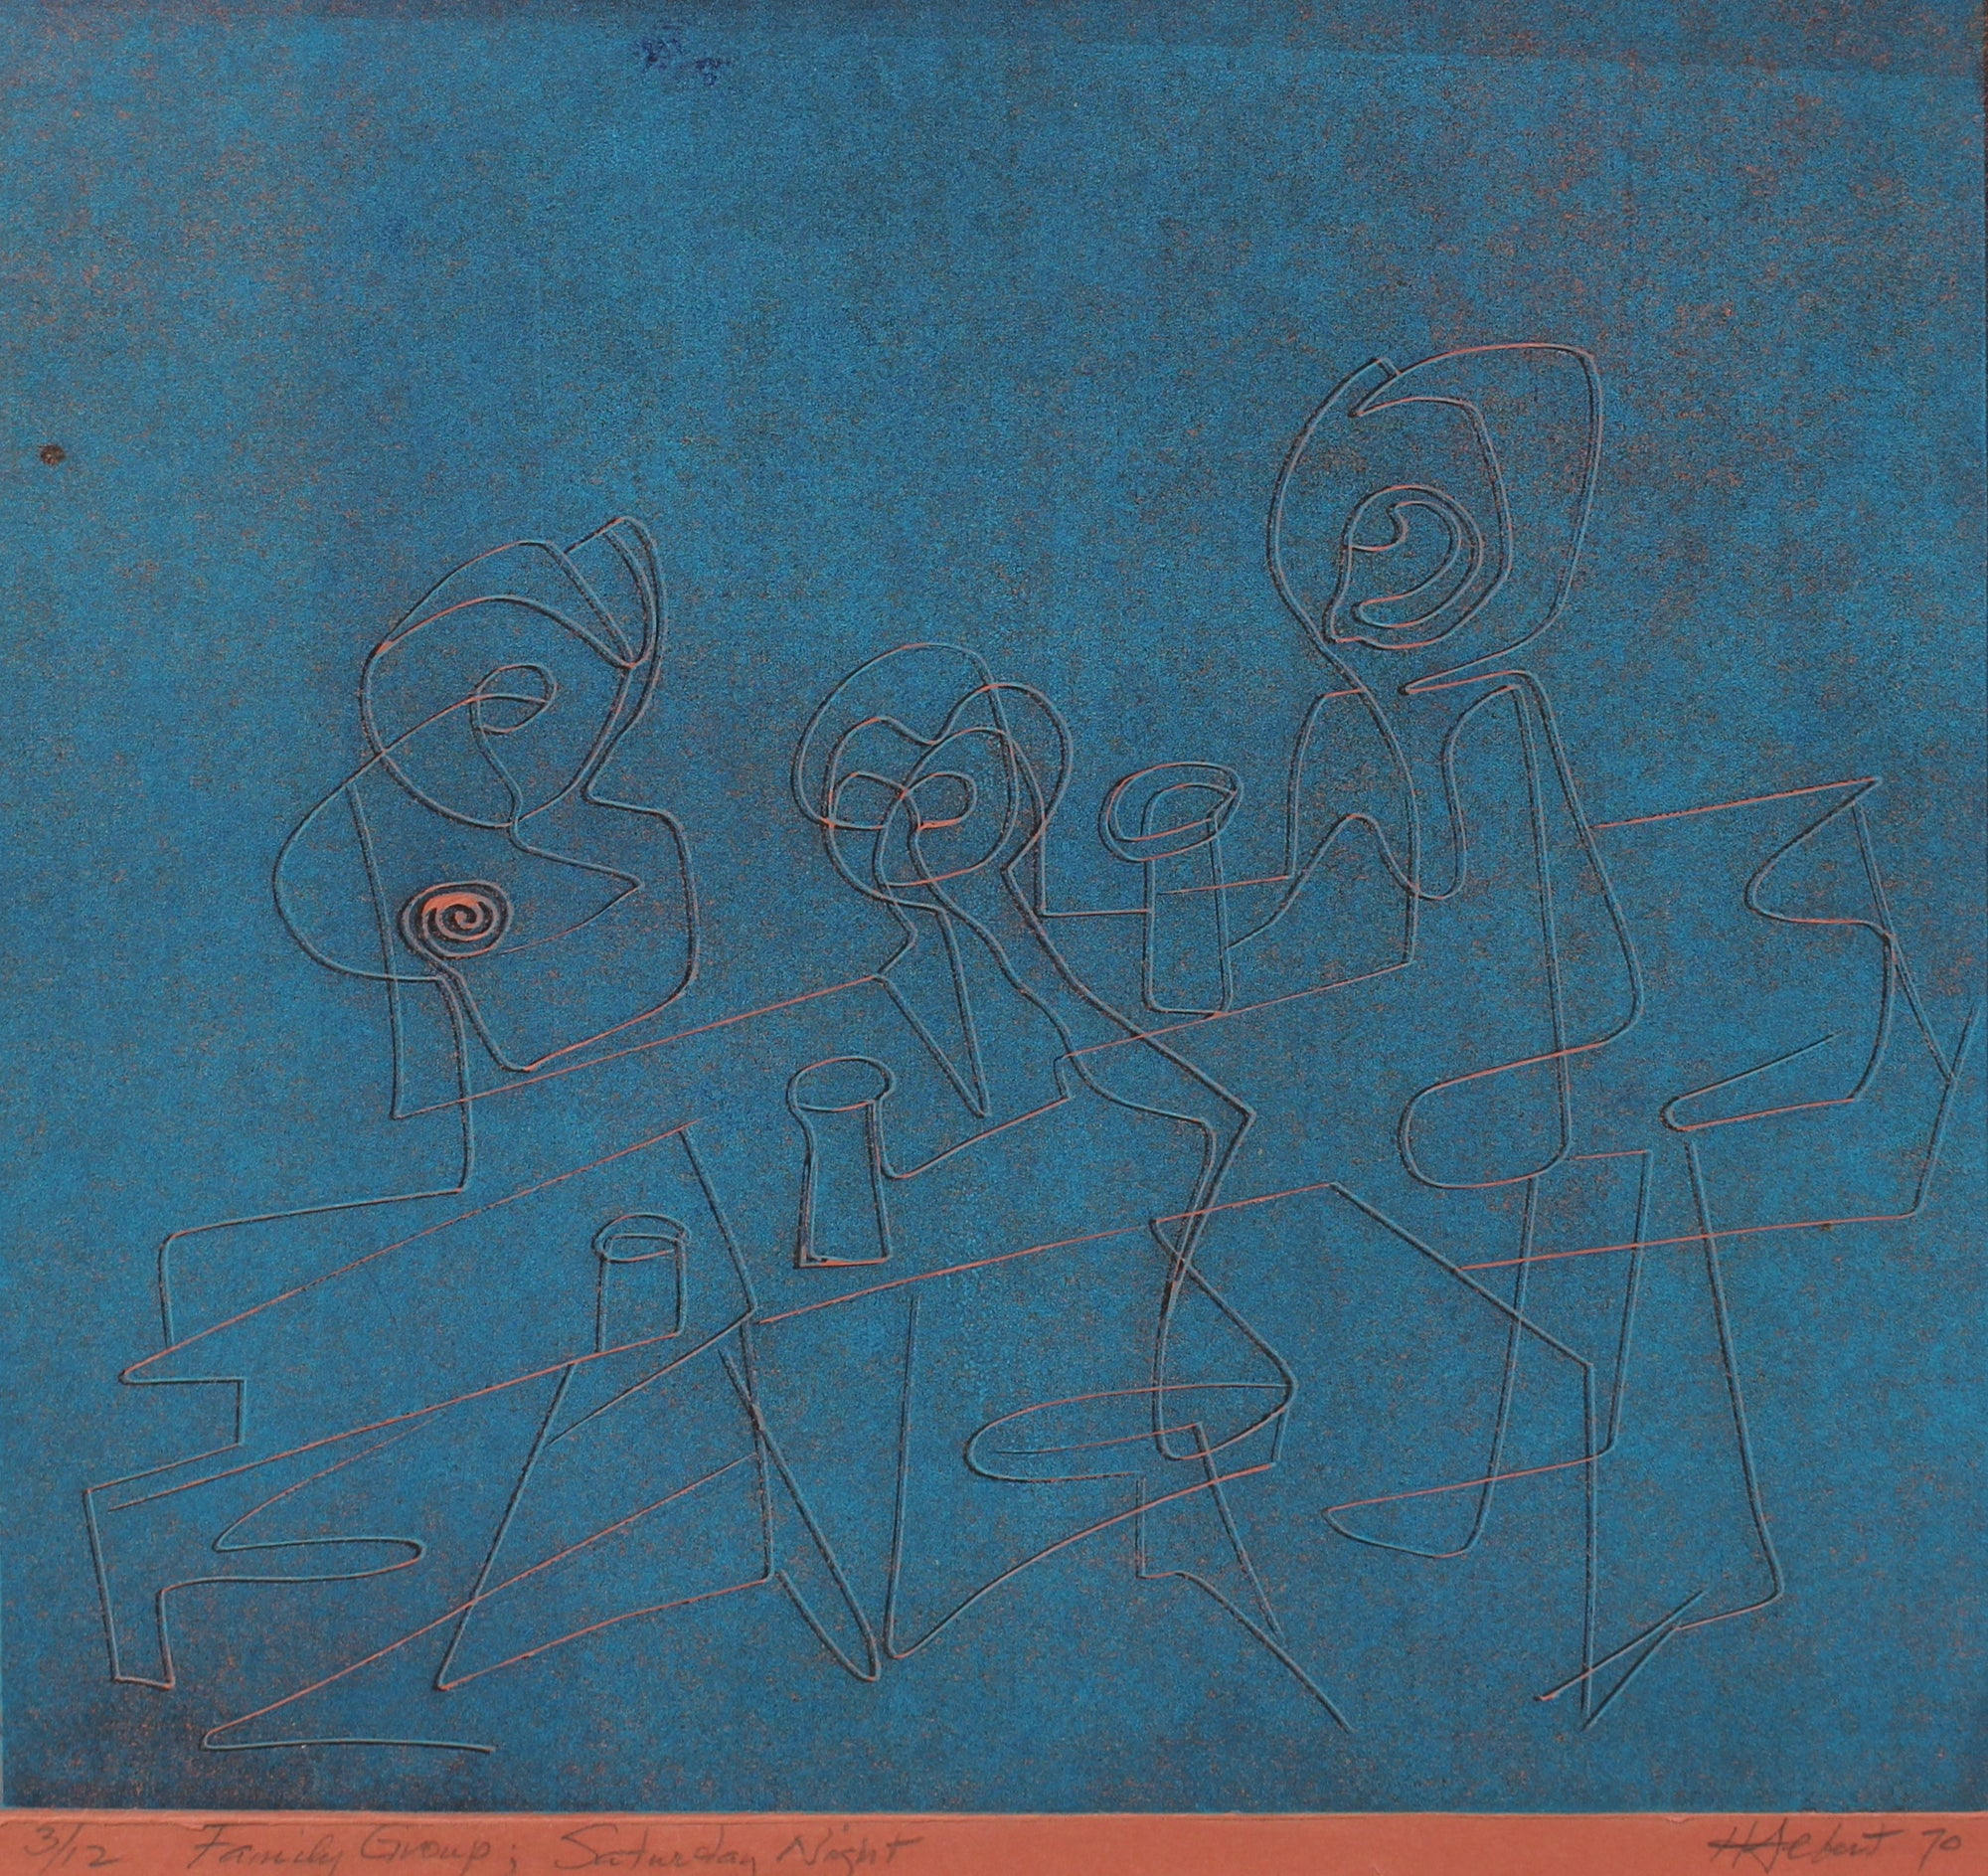 <i>Family Group; Saturday Night</i><br>1970 Serigraph<br><br>#2157D